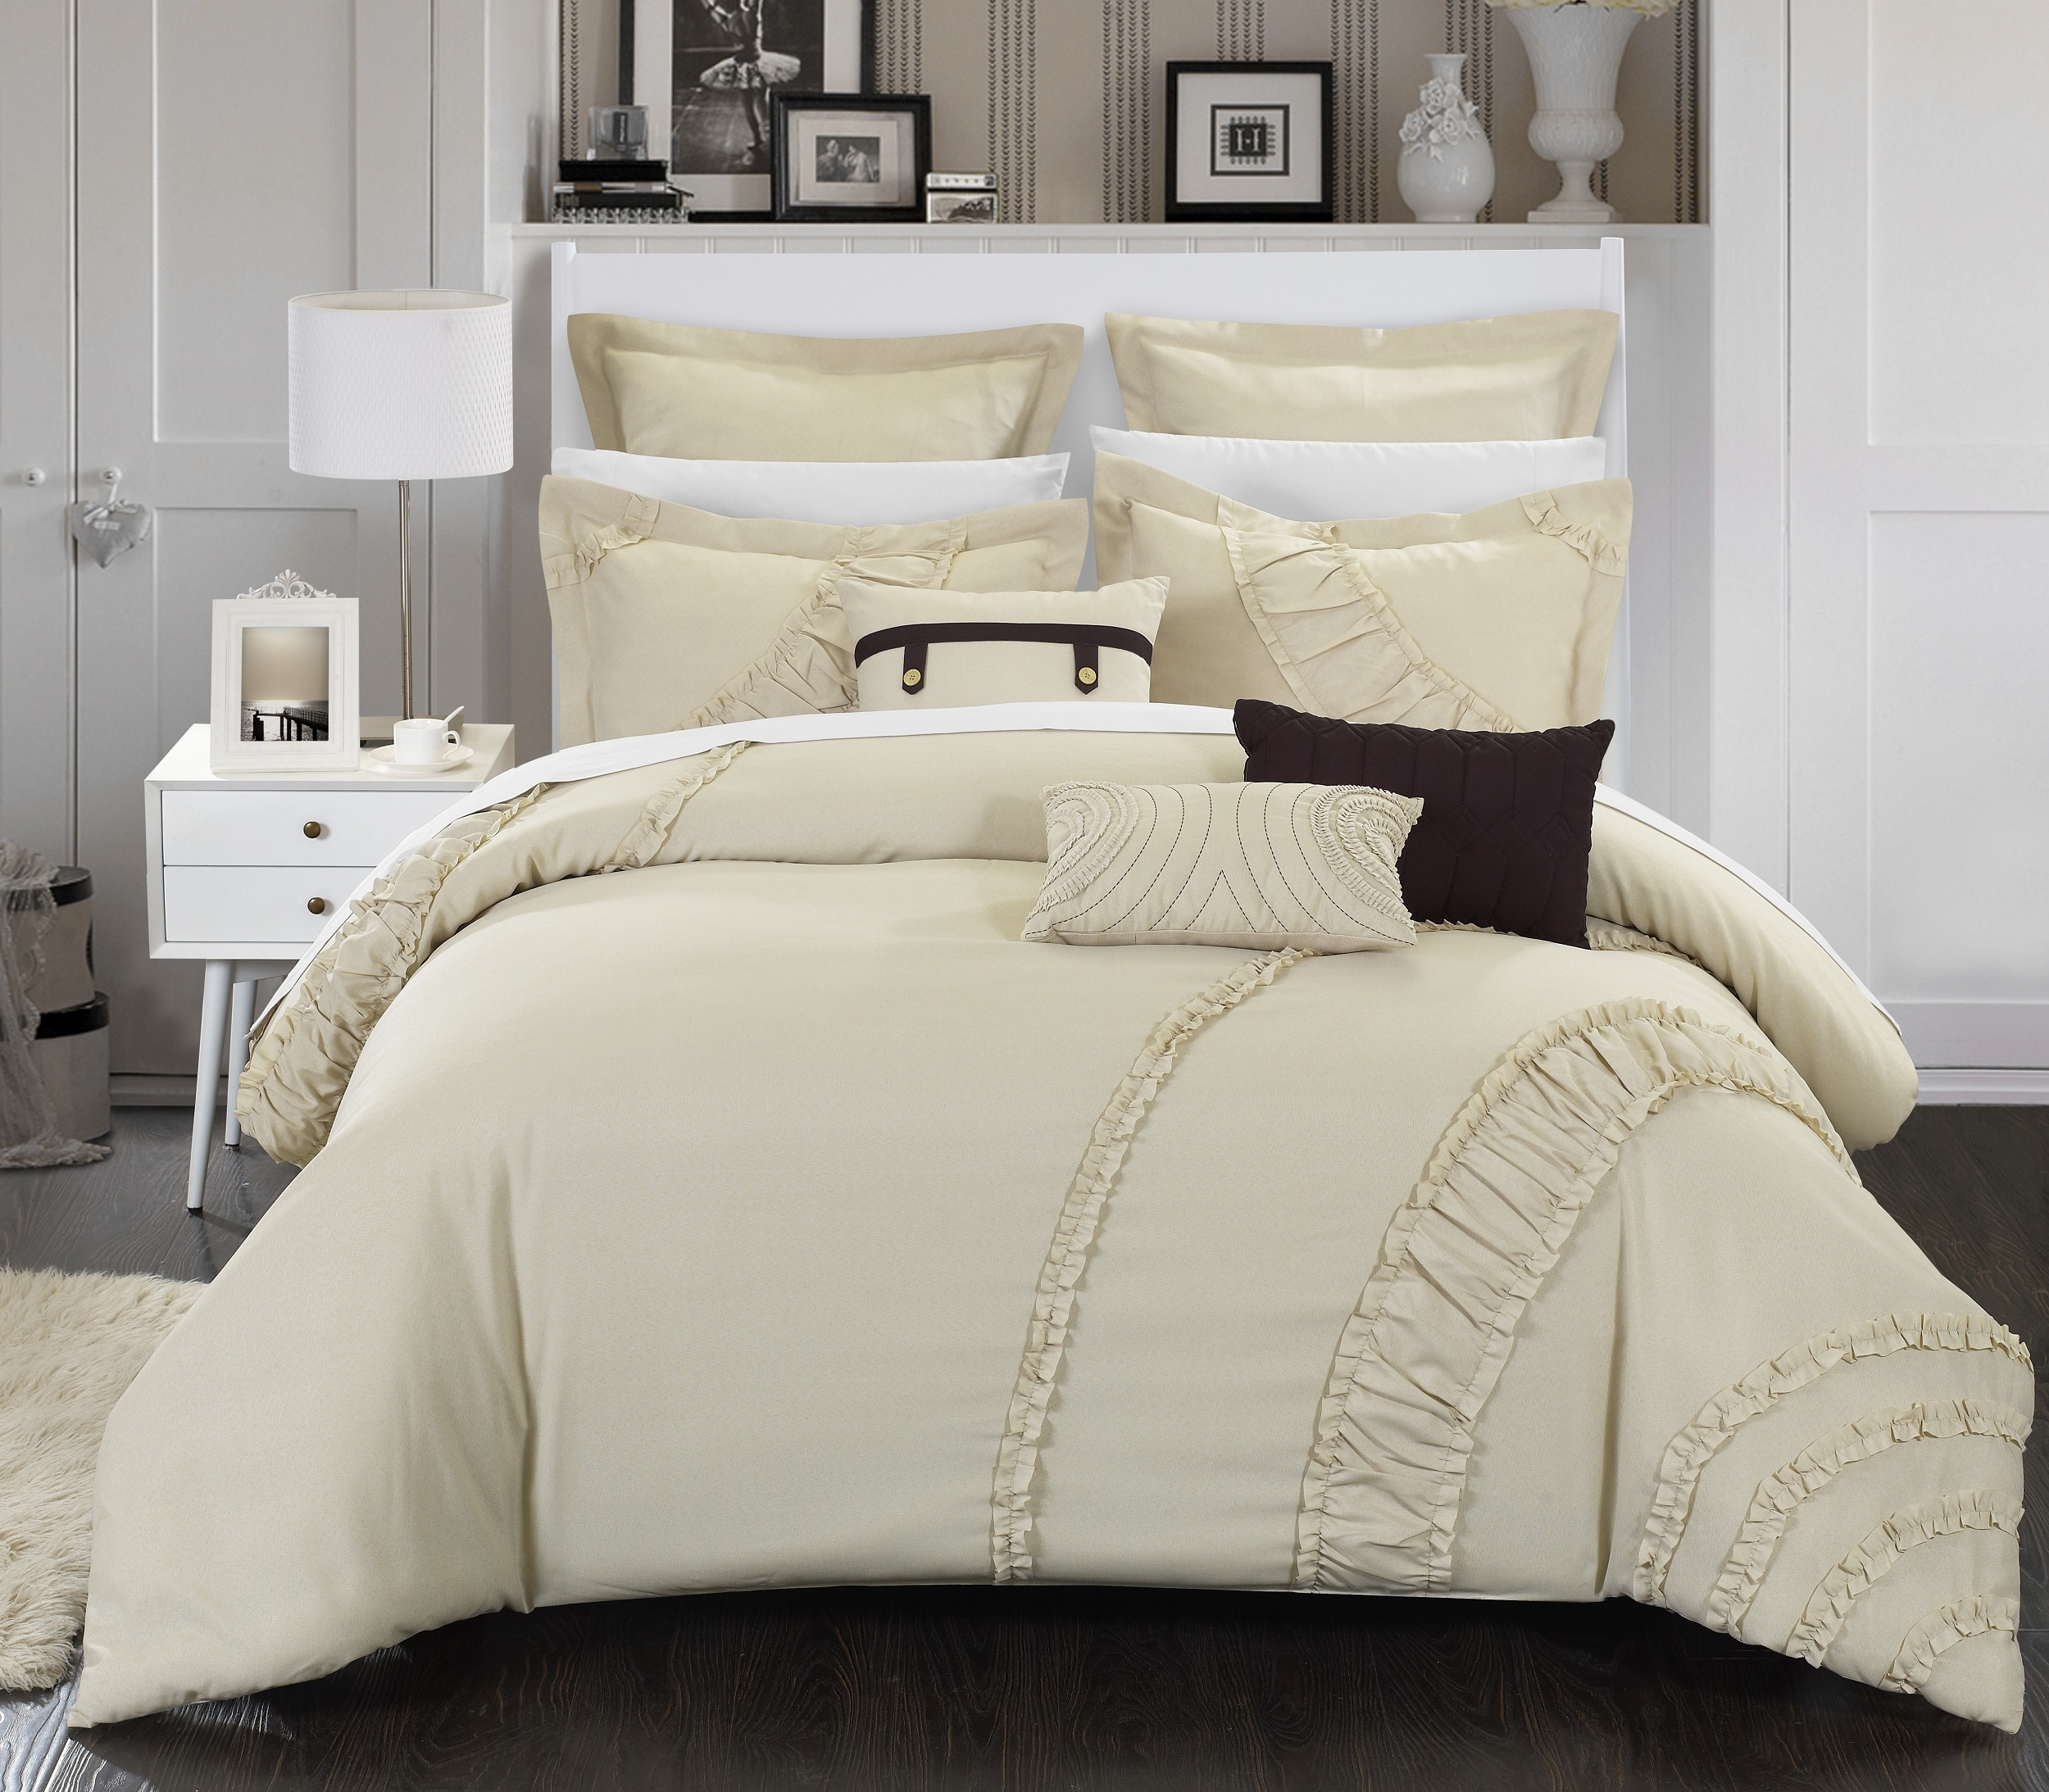 Chic Home 8 Piece Lucerne New Faux Linen Fabric Collection Oversized And Overfilled Embroidered Comforter Set - Queen, Beige